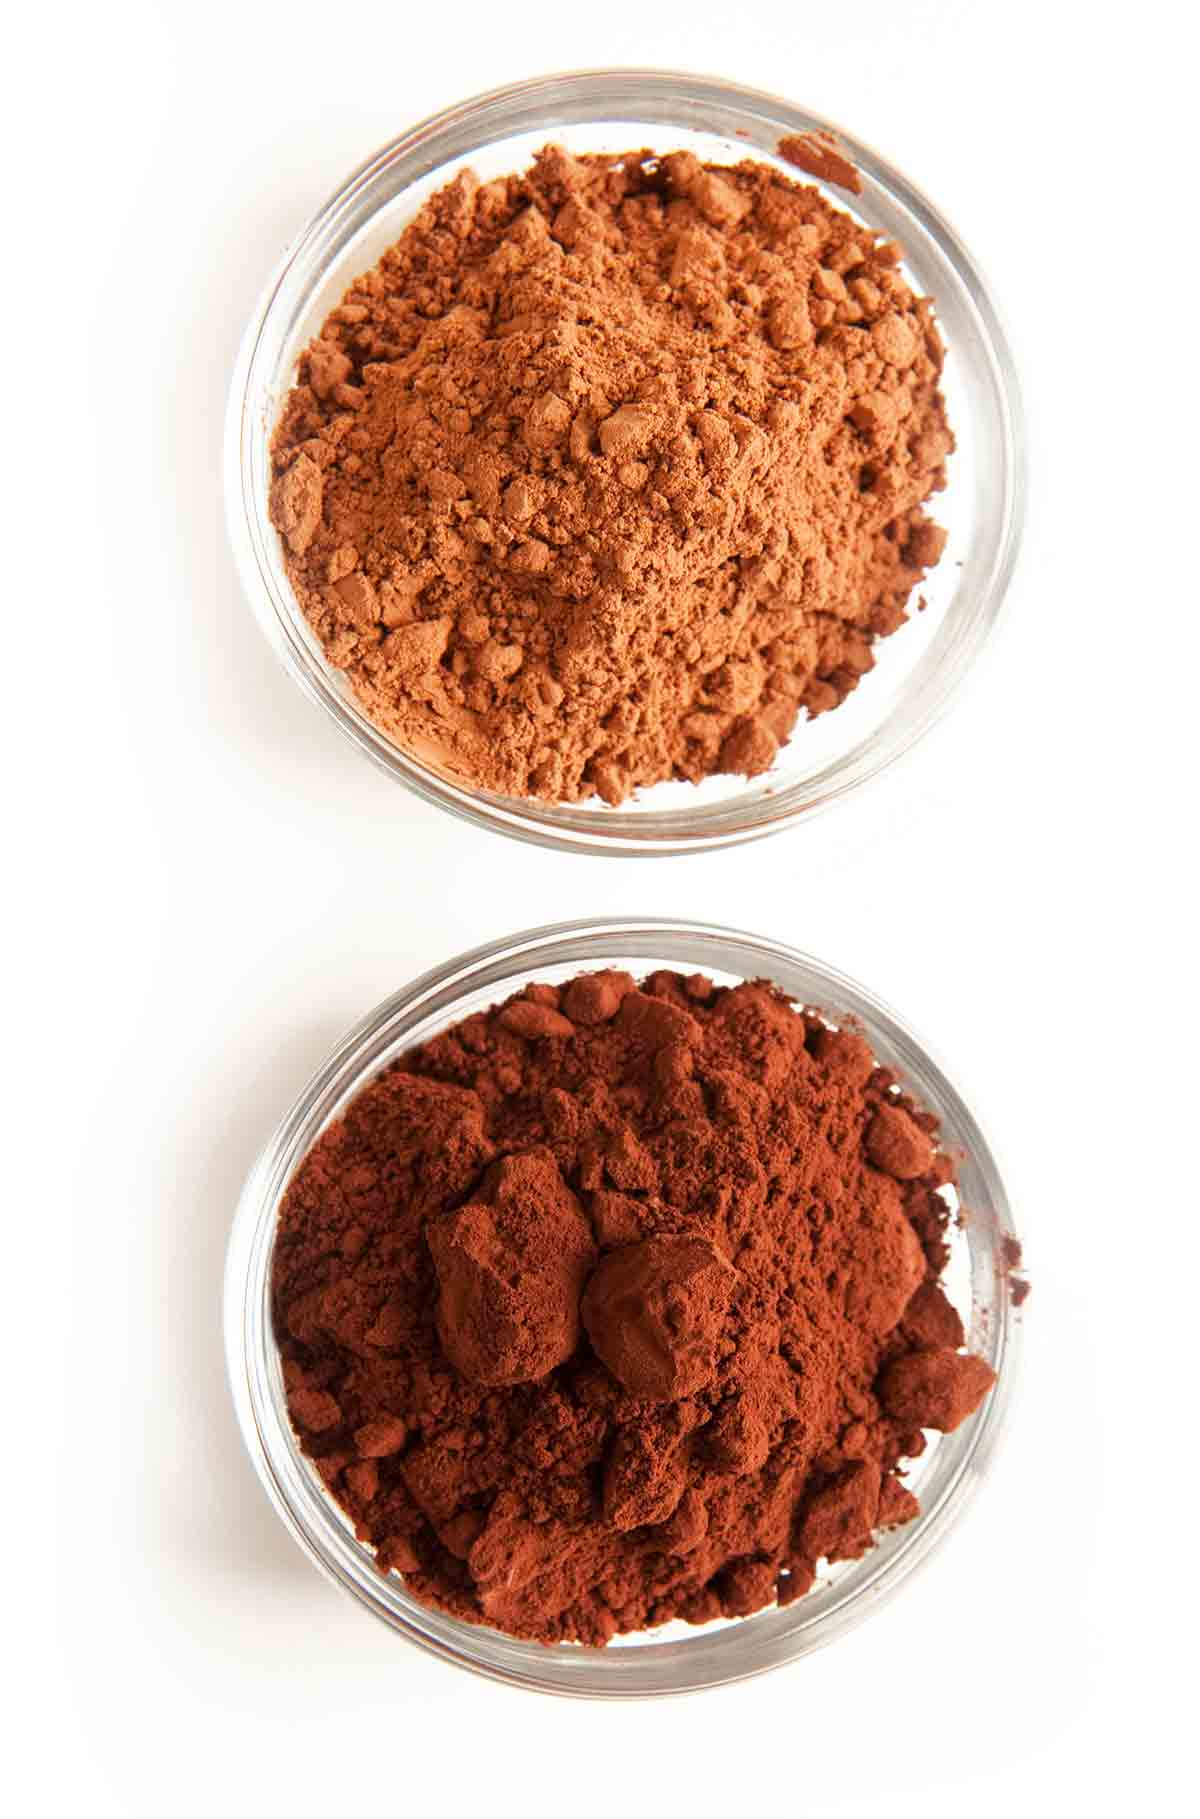 Two bowls of cocoa powders for the writing, what's the difference between cocoa powders?